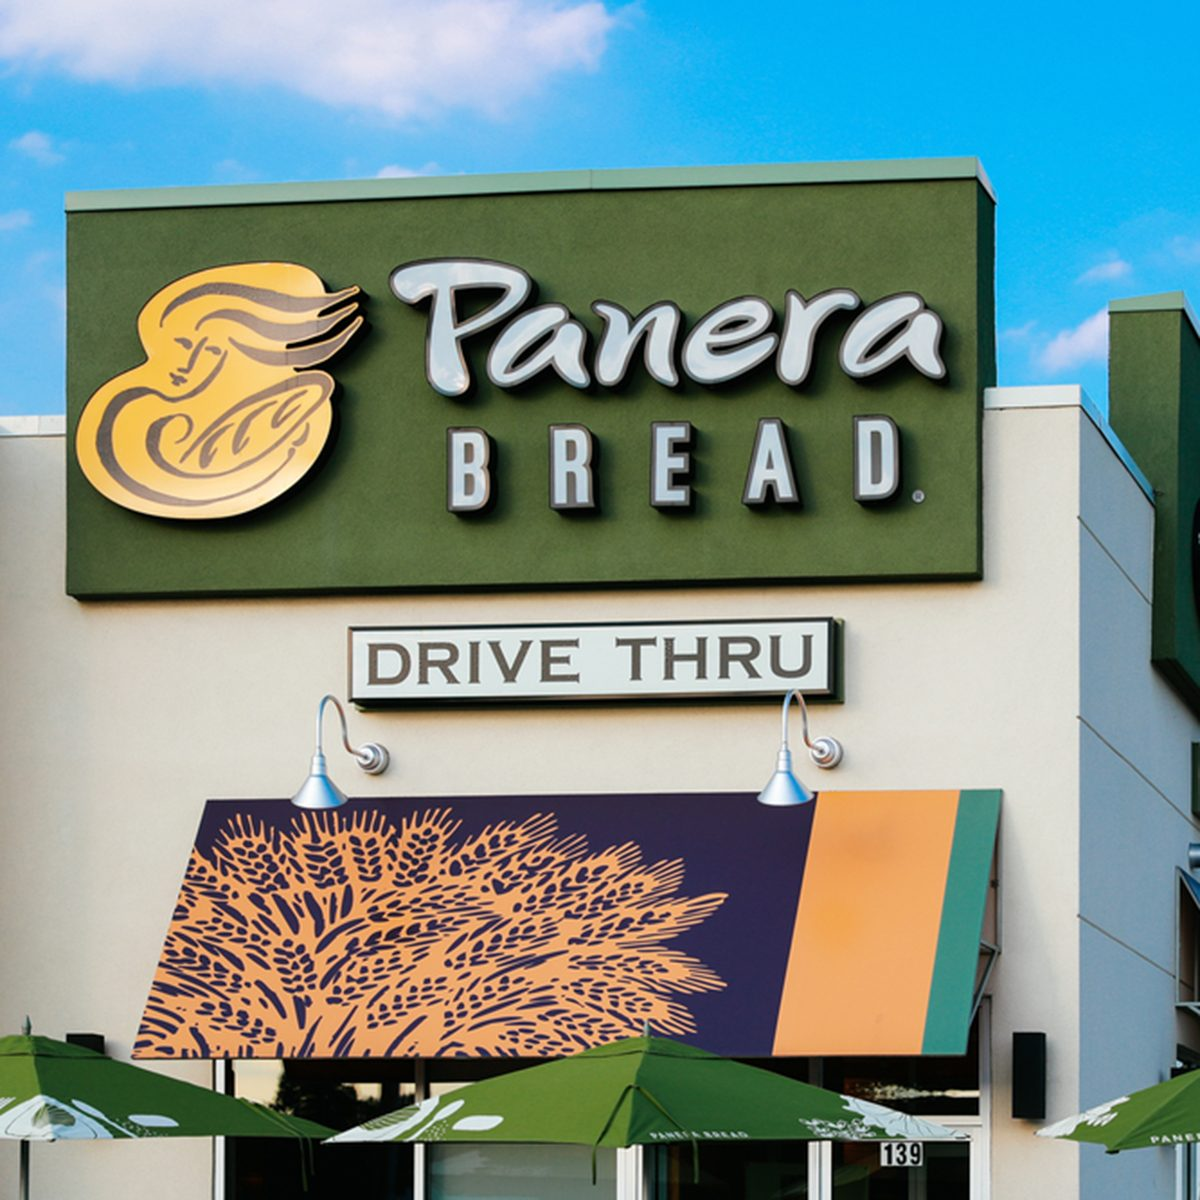 Panera Bread Retail Location.